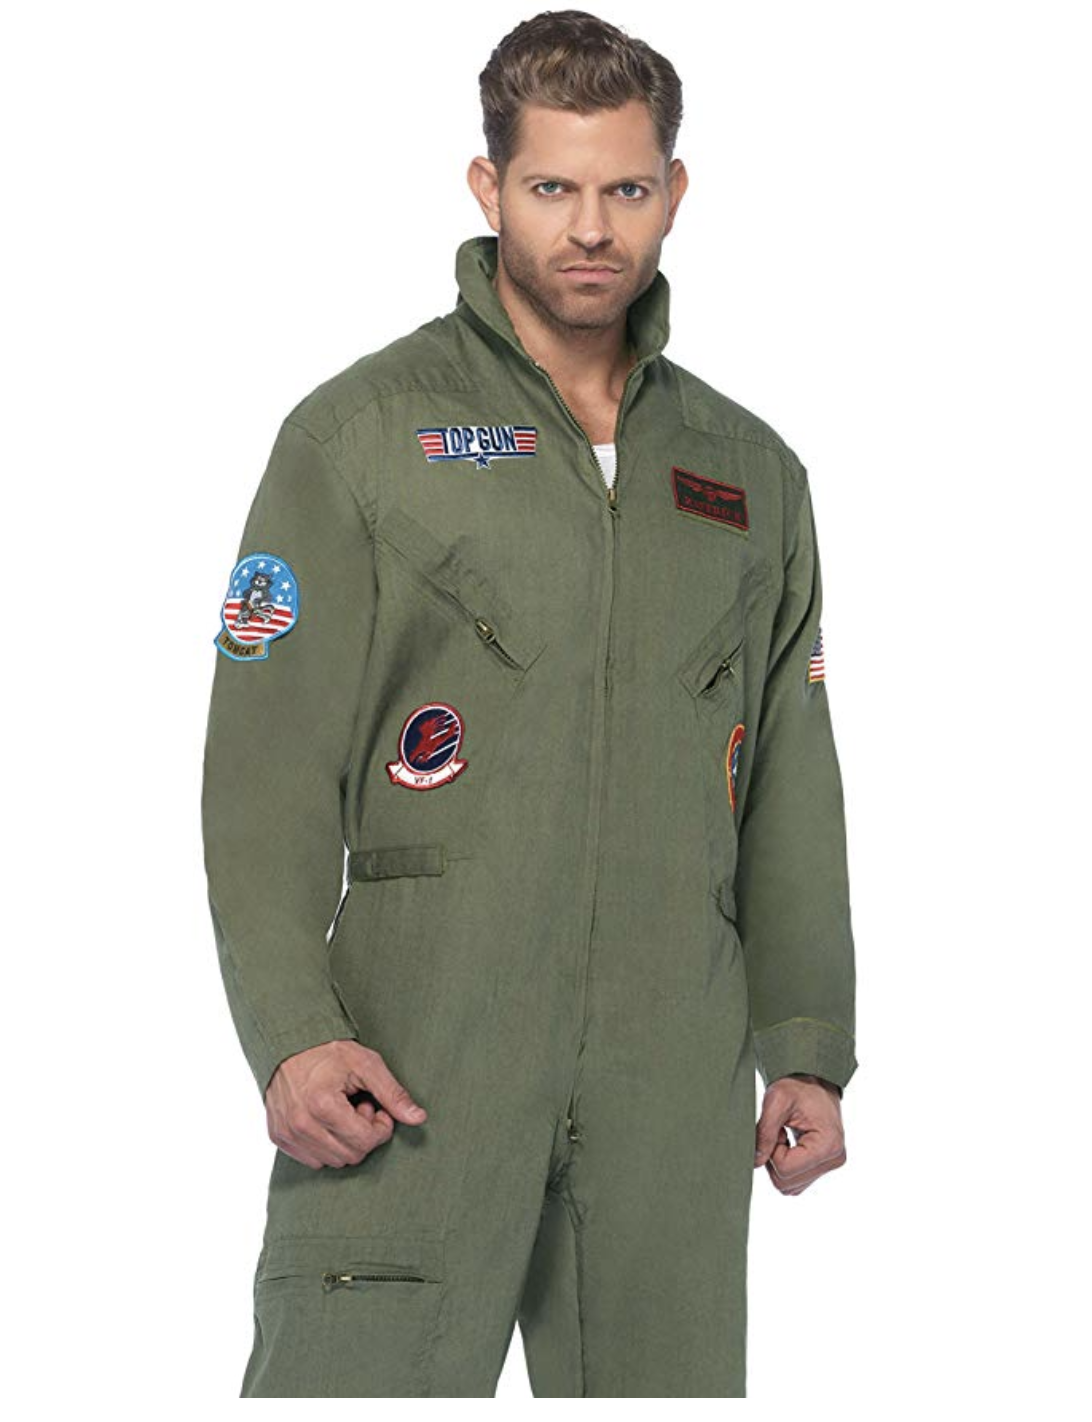 Leg Avenue's Top Gun Flight Suit Costume